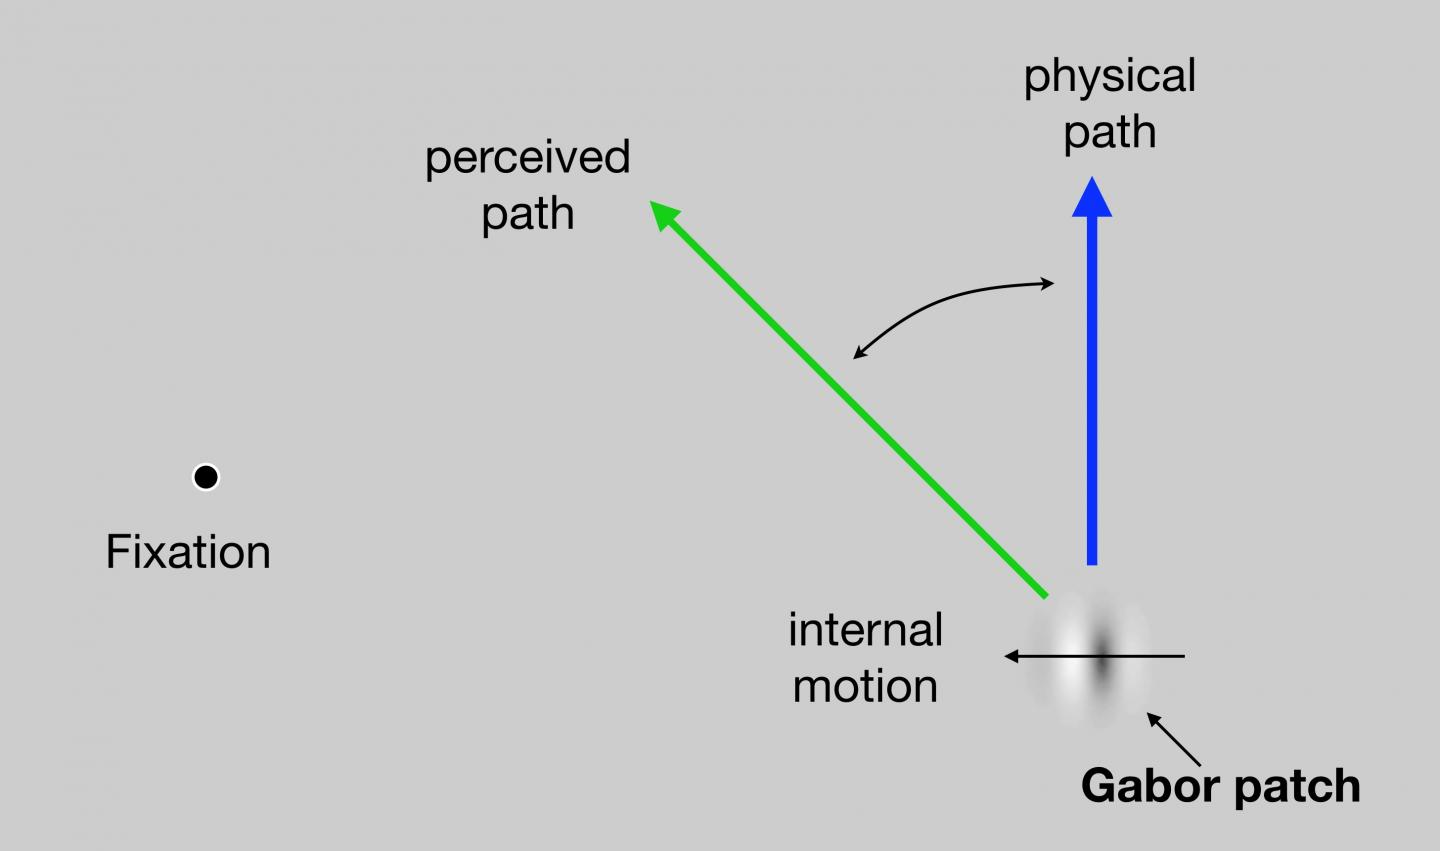 Difference between the Perceived (Illusory) Path Versus the Real (Physical) Path of the Gabor Patch